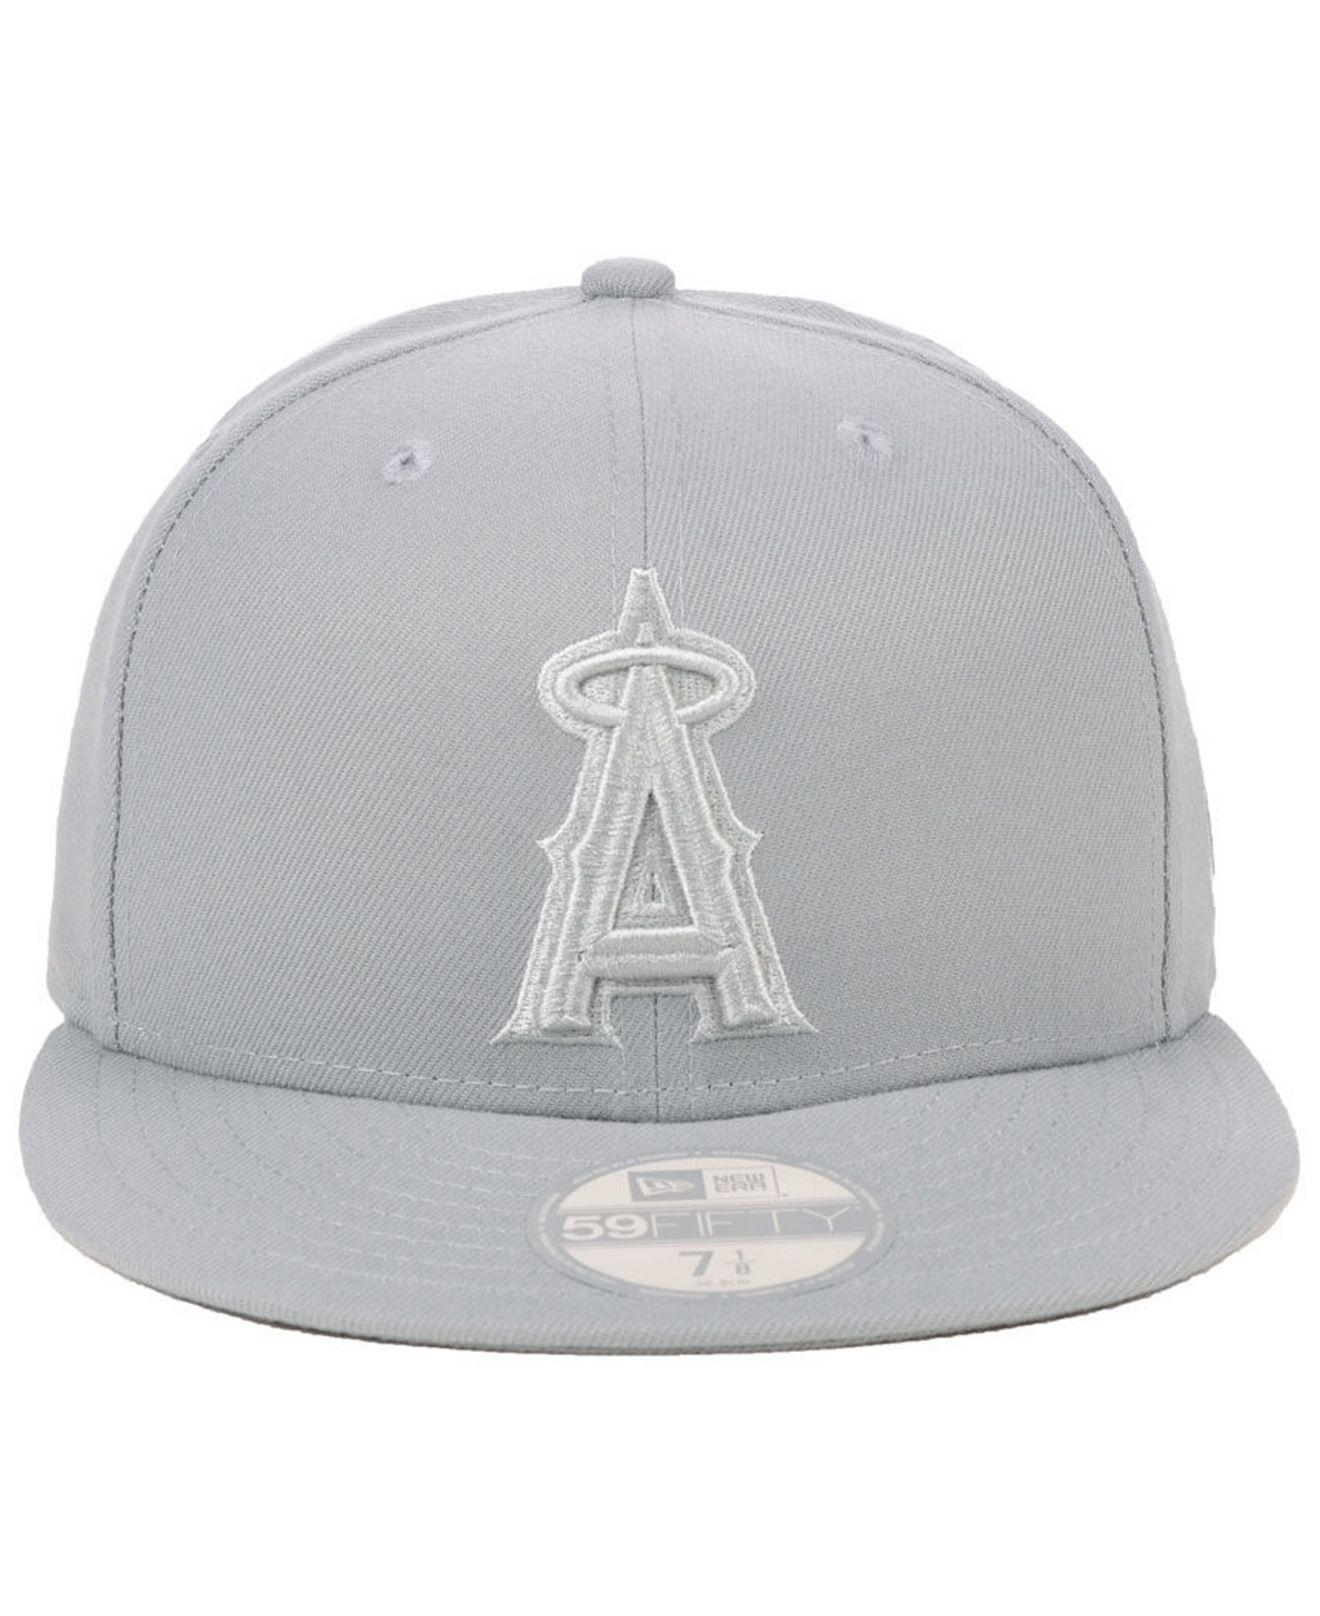 df4cd926872 ... low price lyst ktz los angeles angels fall prism pack 59fifty fitted cap  in gray 7f0a9